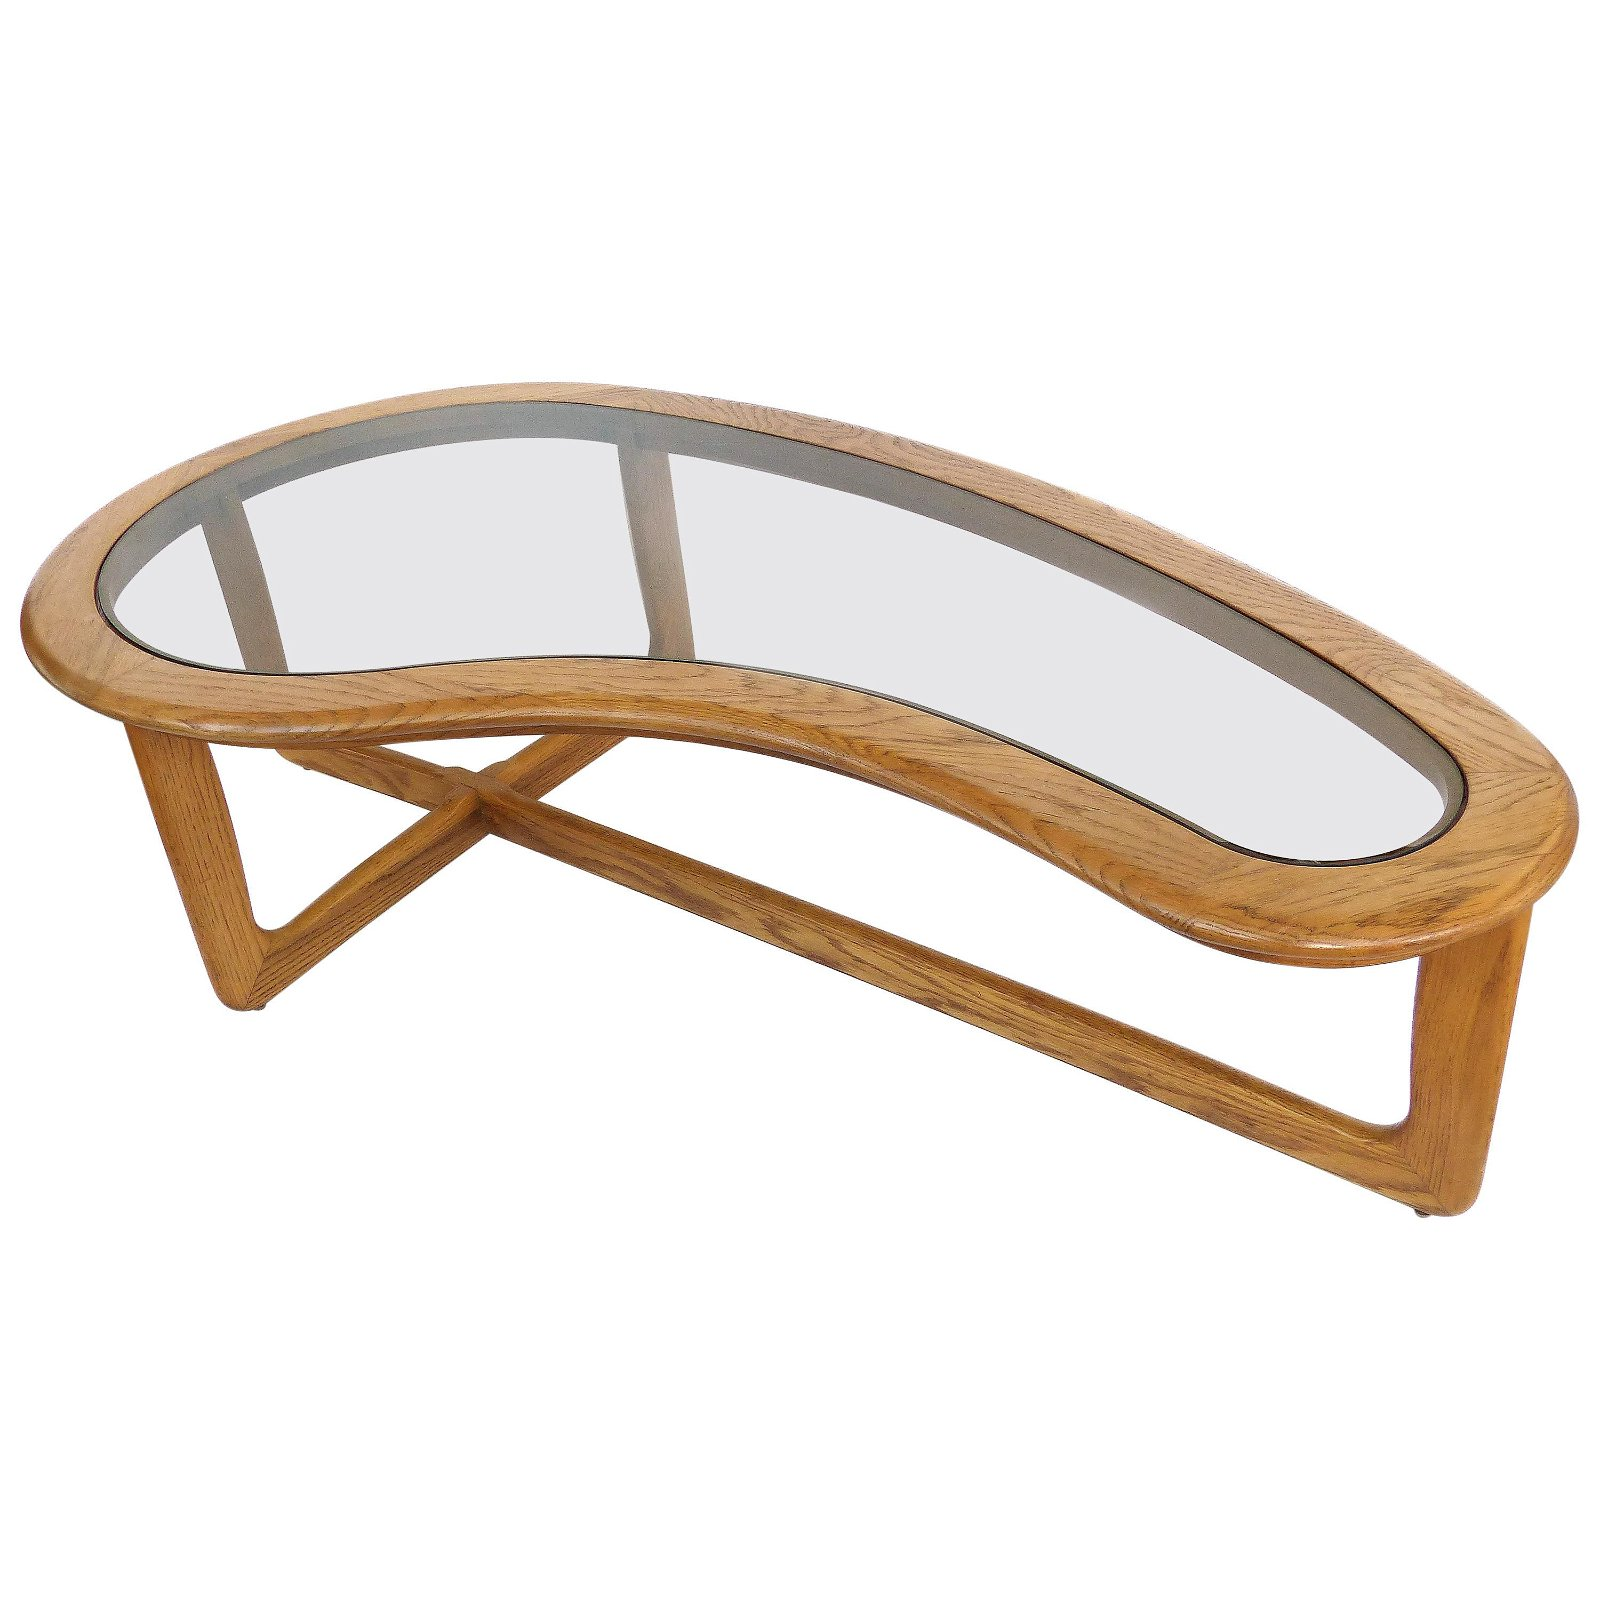 Mid-Century Modern Lane Kidney Shaped Boomerang Walnut